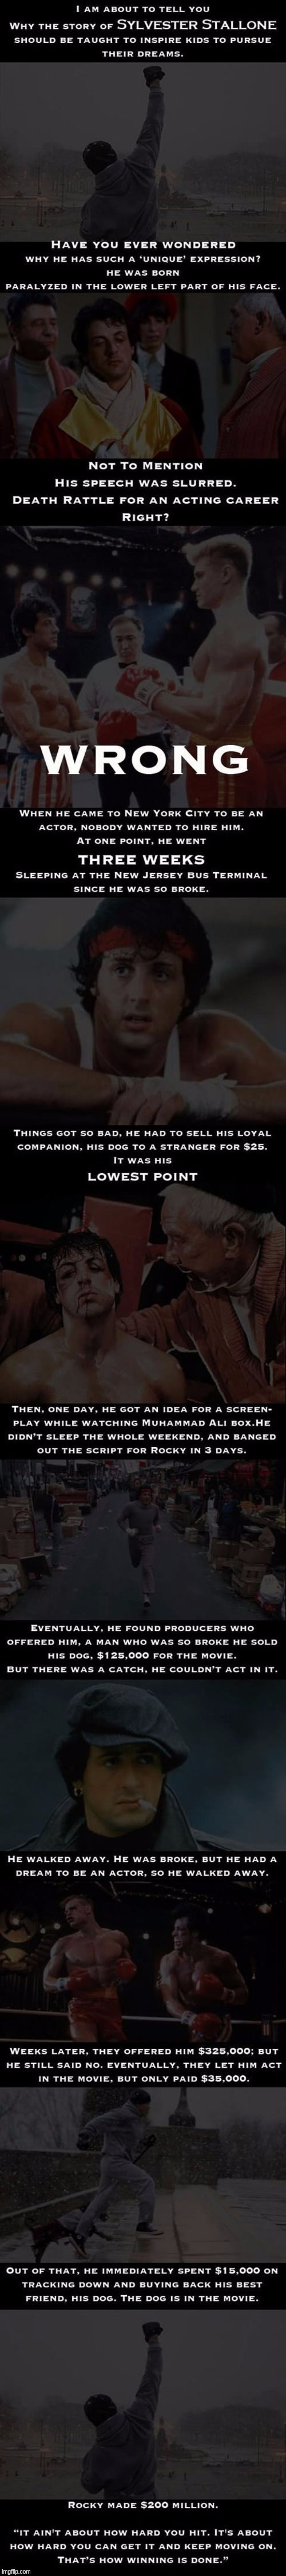 This is too good not to share!  Thanks to DashHopes!  | TOO GOOD NOT TO SHARE! | image tagged in memes,inspirational,dashhopes,sylvester stallone,rocky,follow your dreams | made w/ Imgflip meme maker